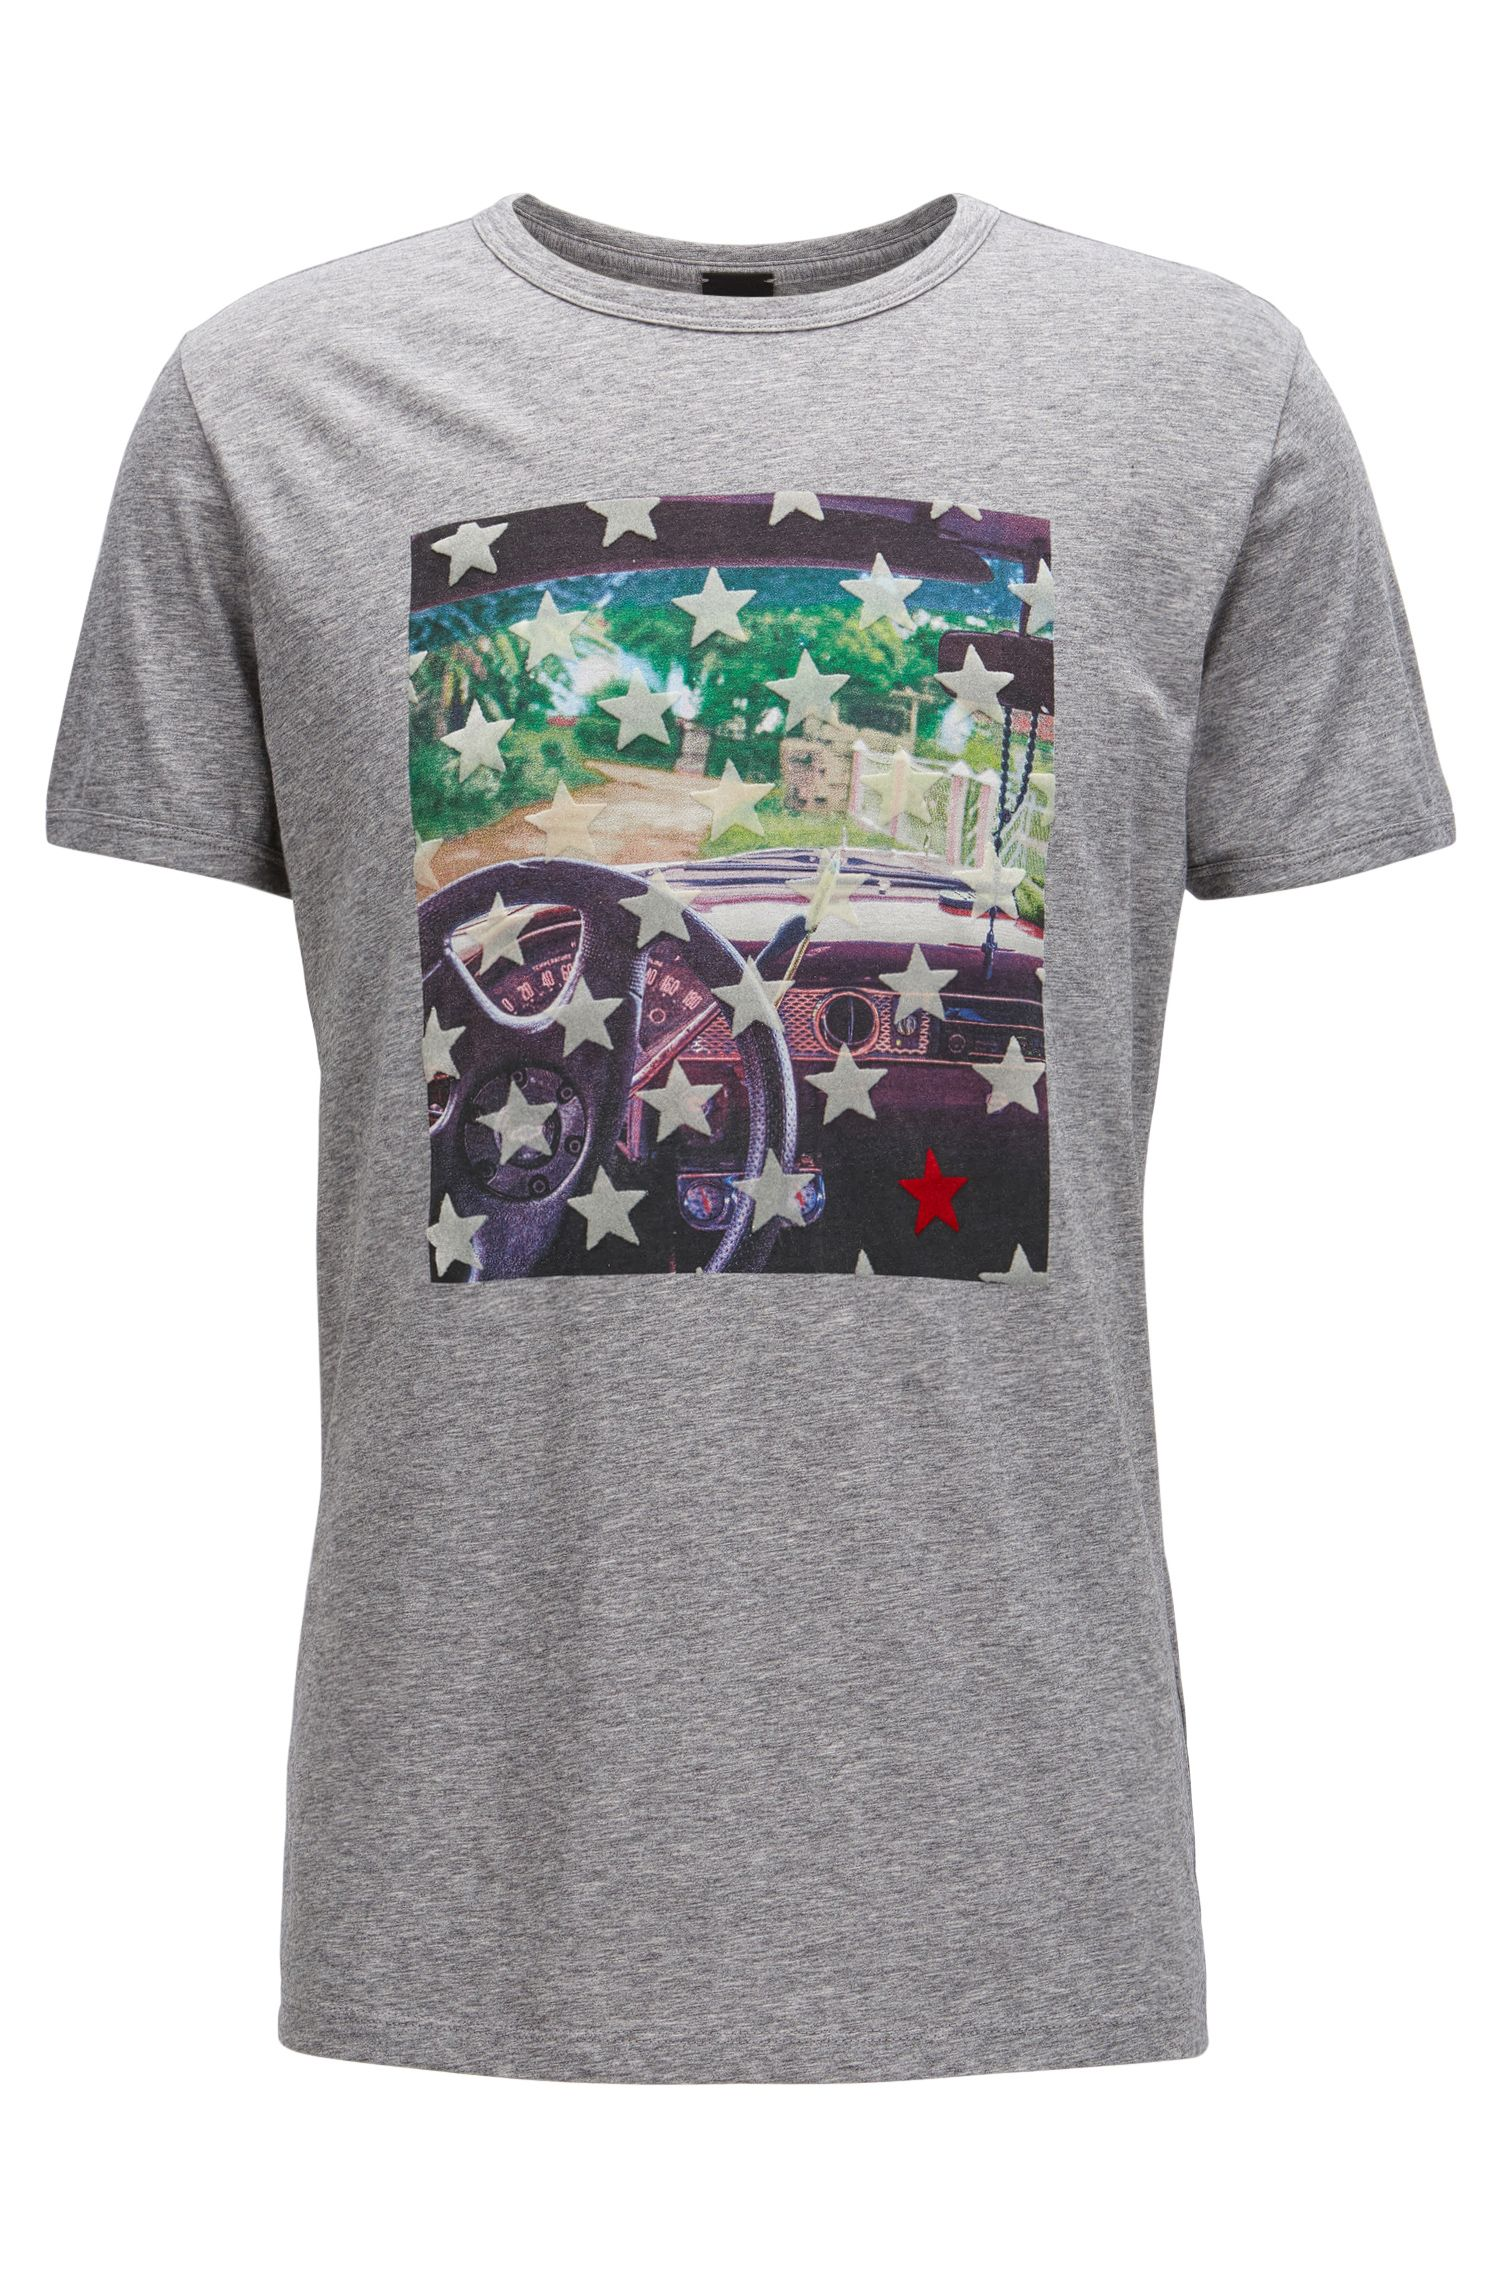 Cotton Graphic T-Shirt | Turbulent